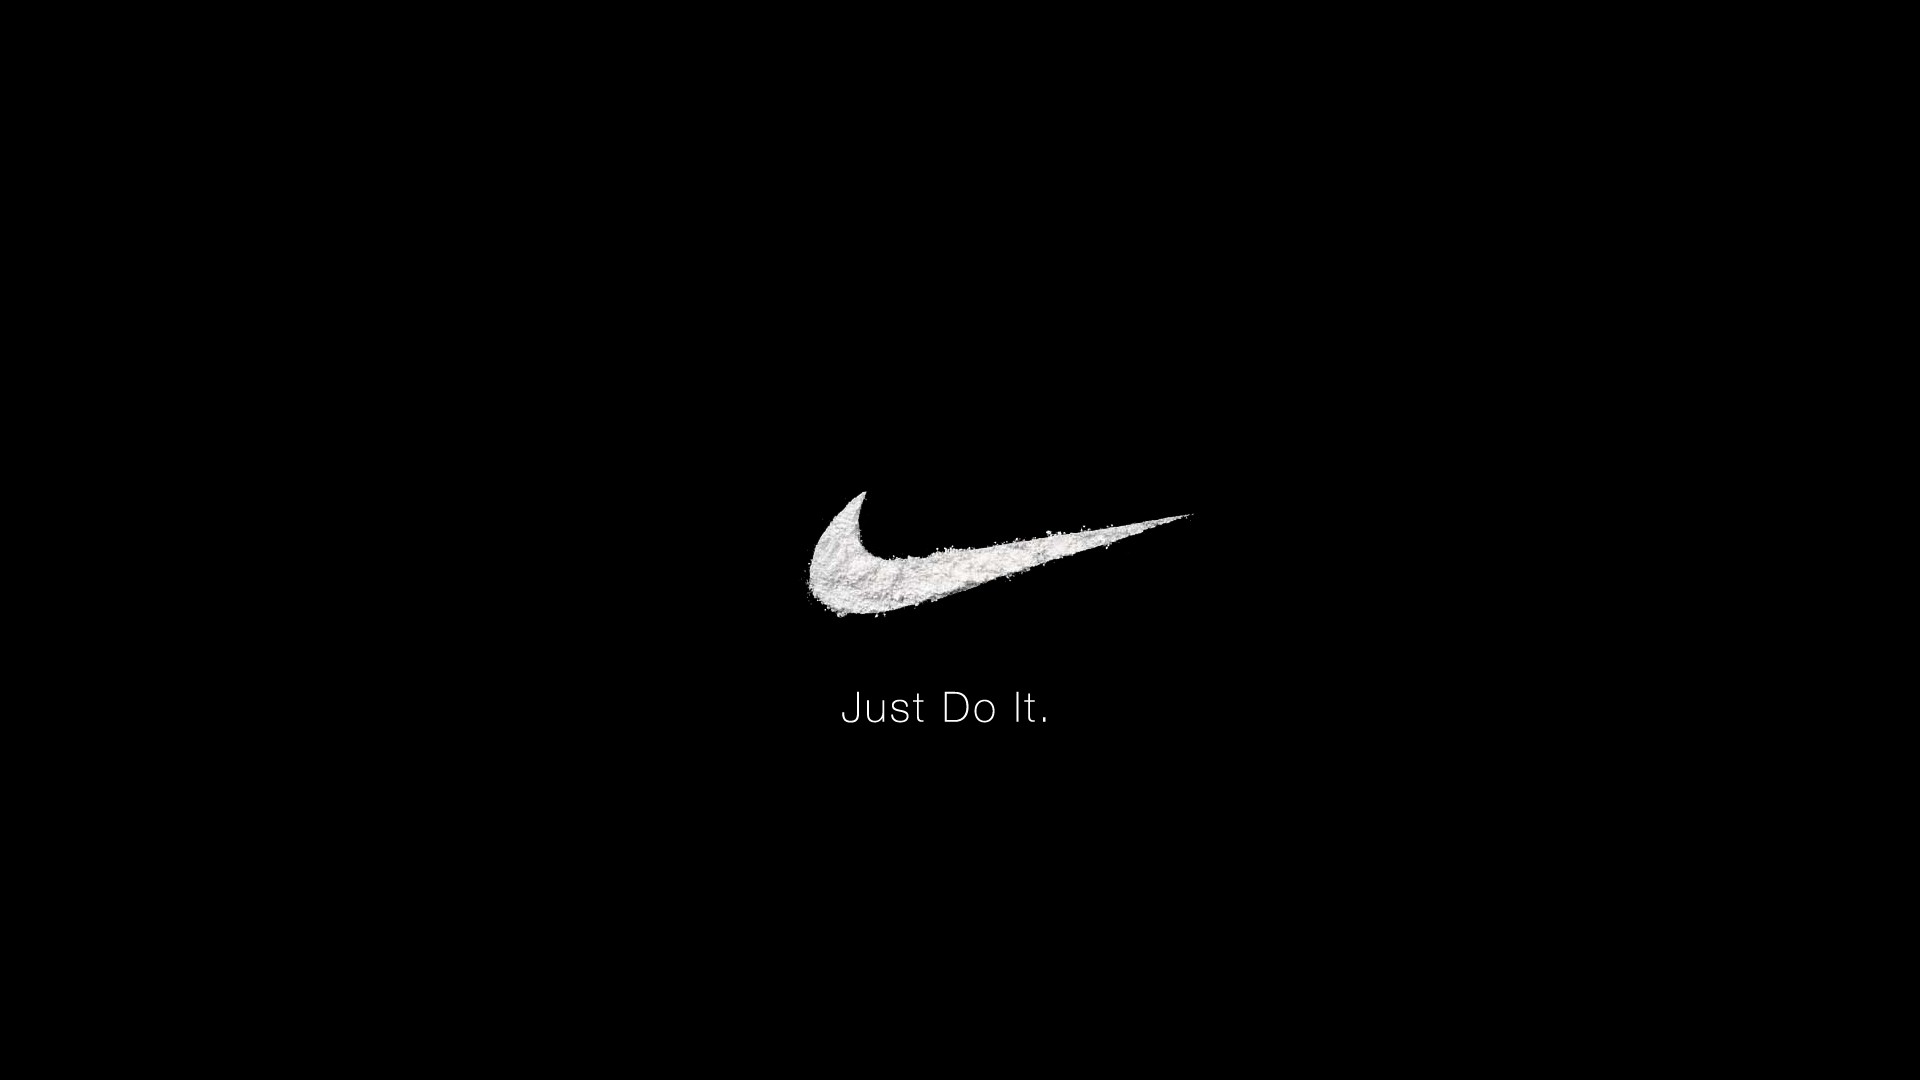 justice Nike slogan logos Just do it wallpaper background 1920x1080